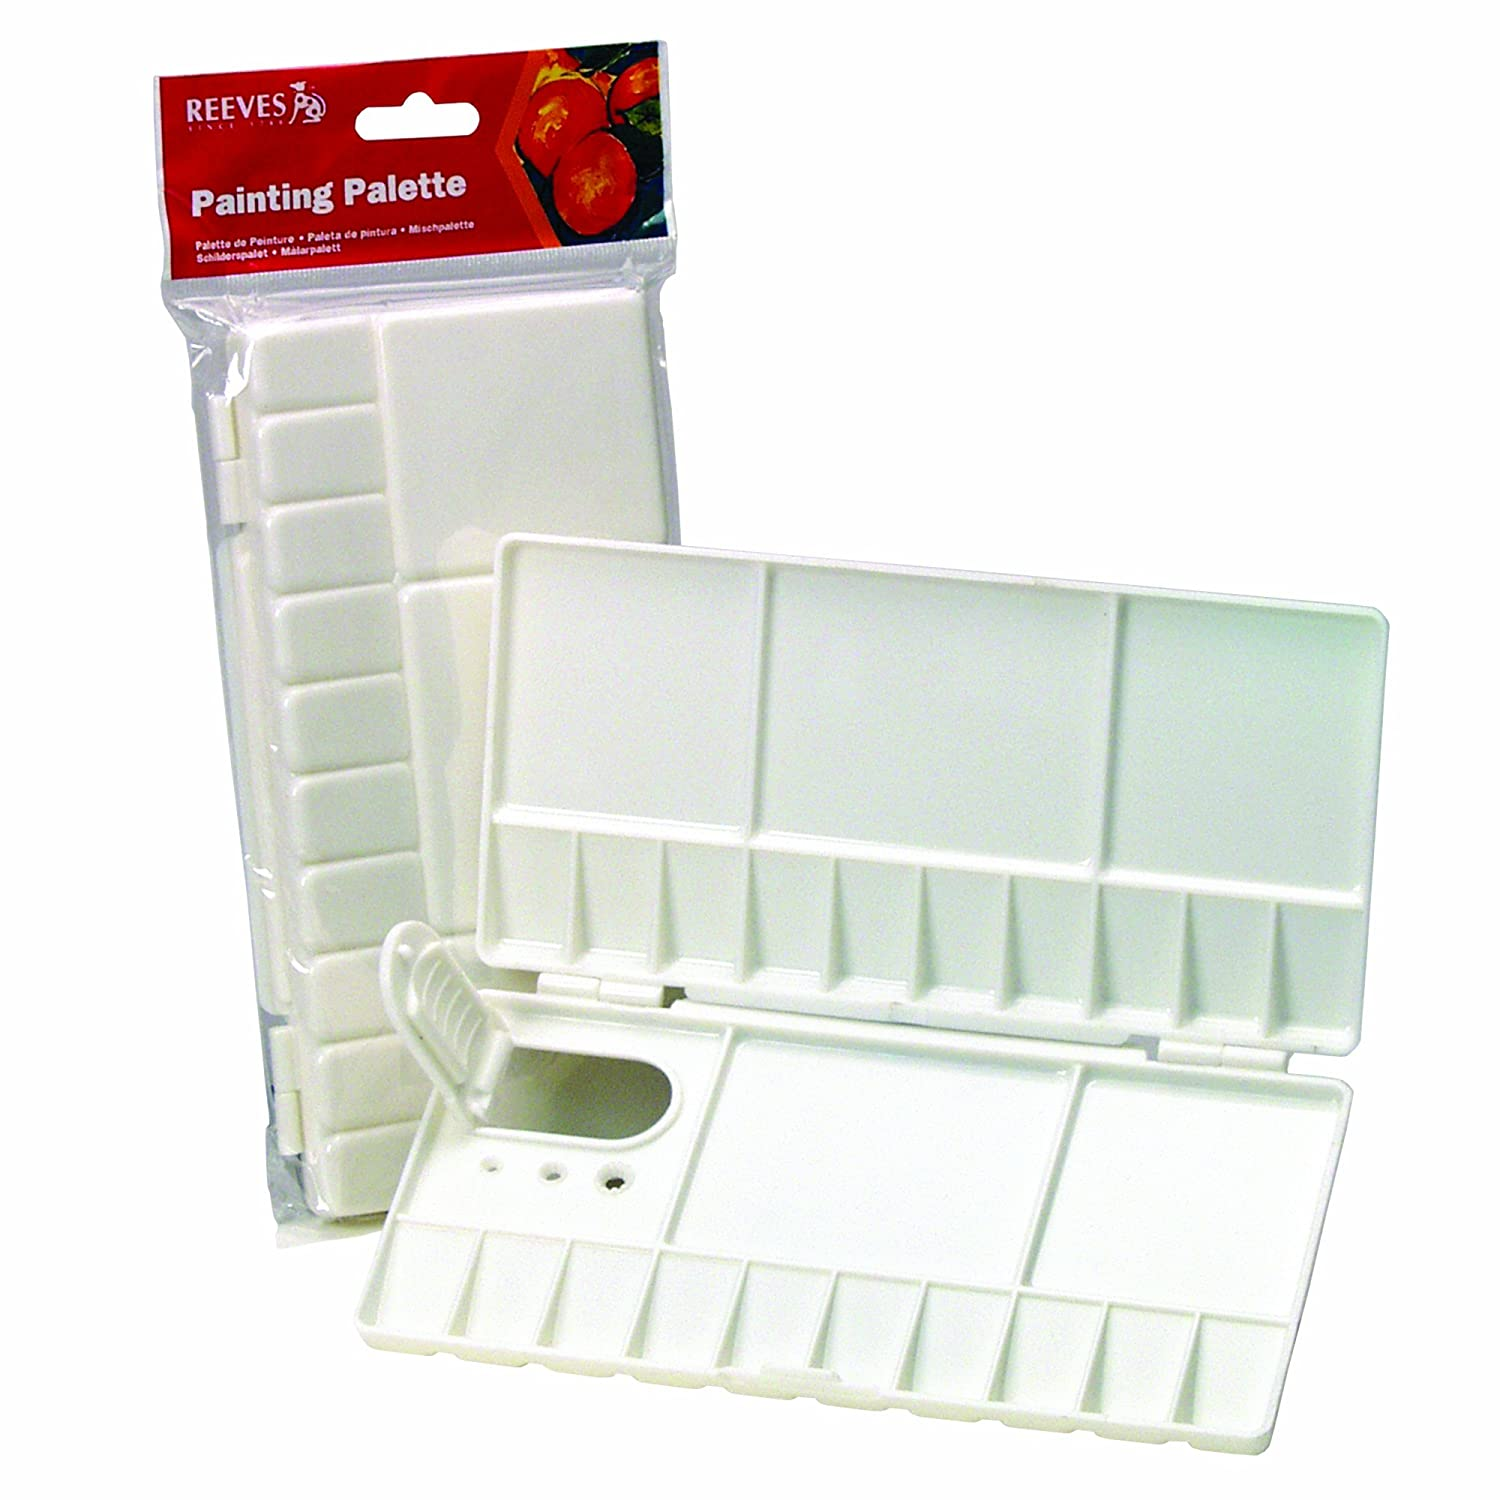 Reeves Small Folding Plastic Palette 8490527